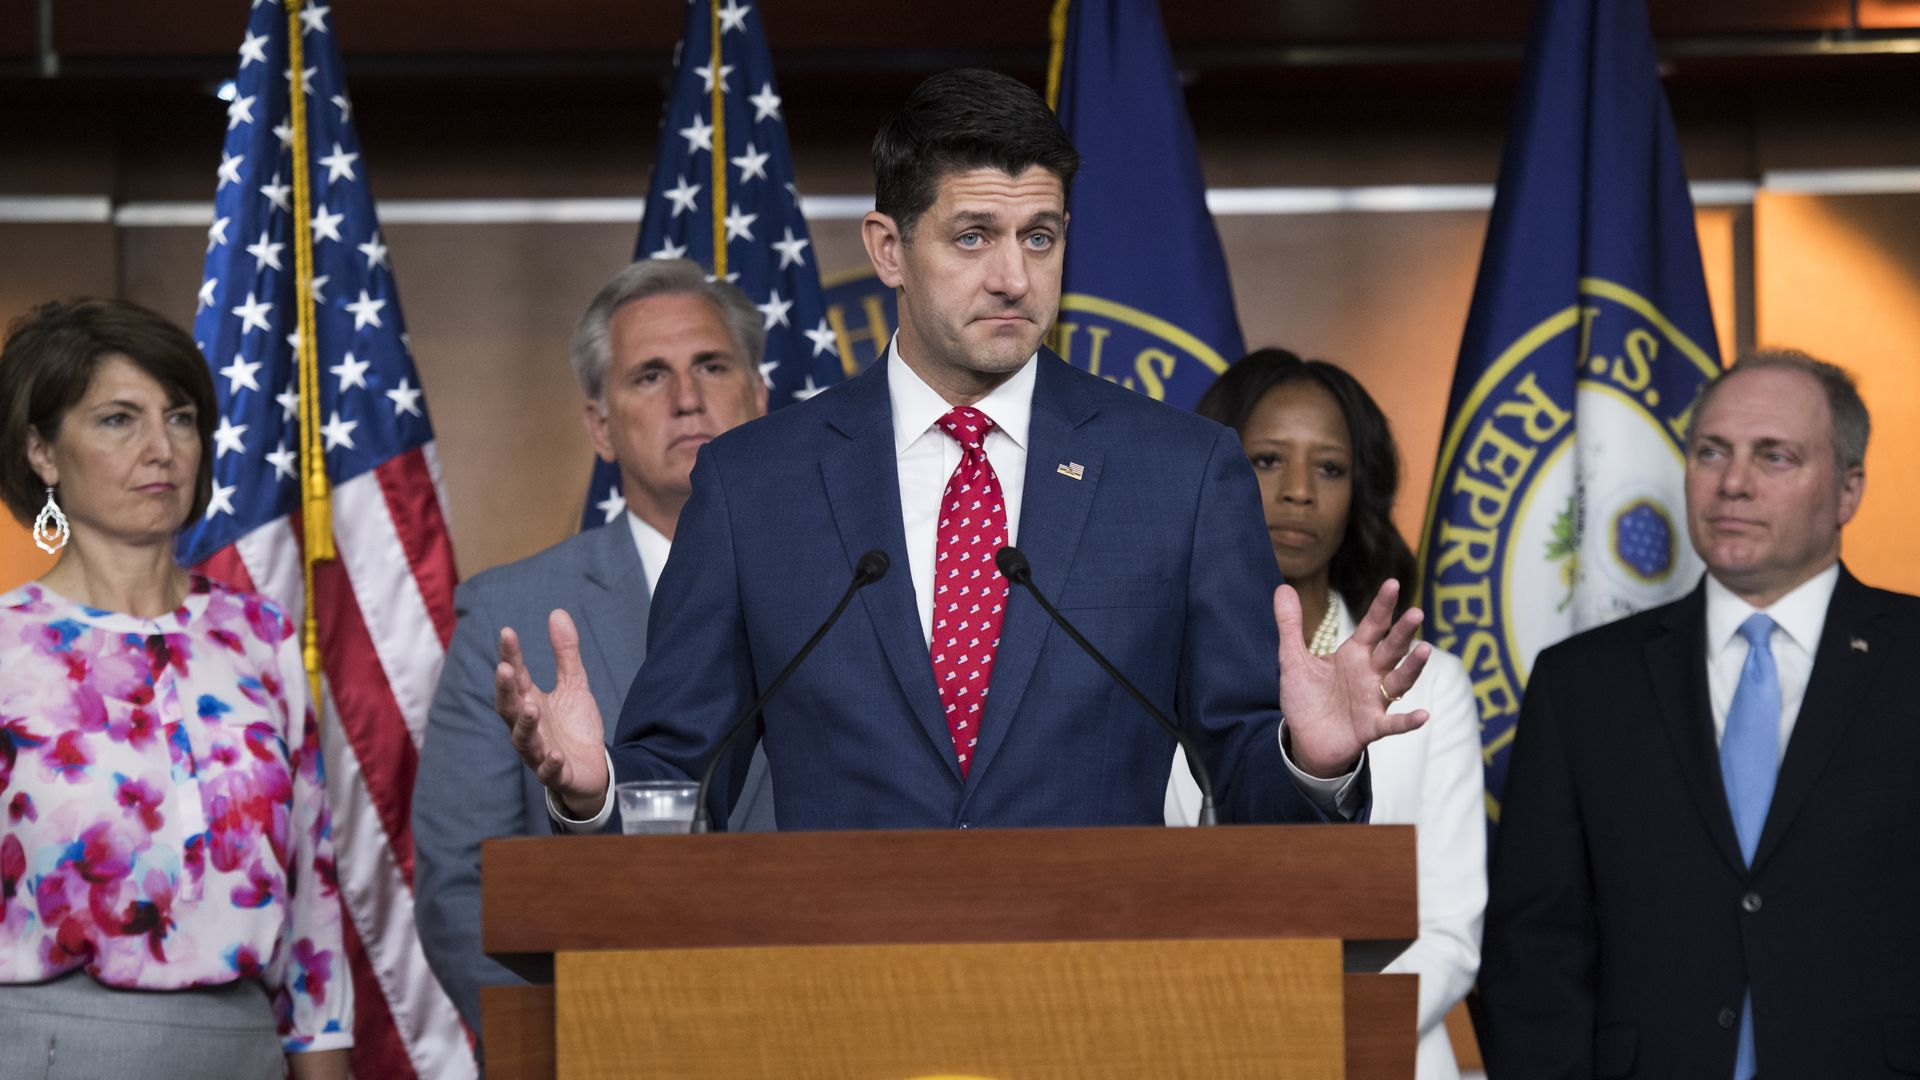 Paul Ryan speaking at a podium with his hands in the air and his bottom lip jutted out